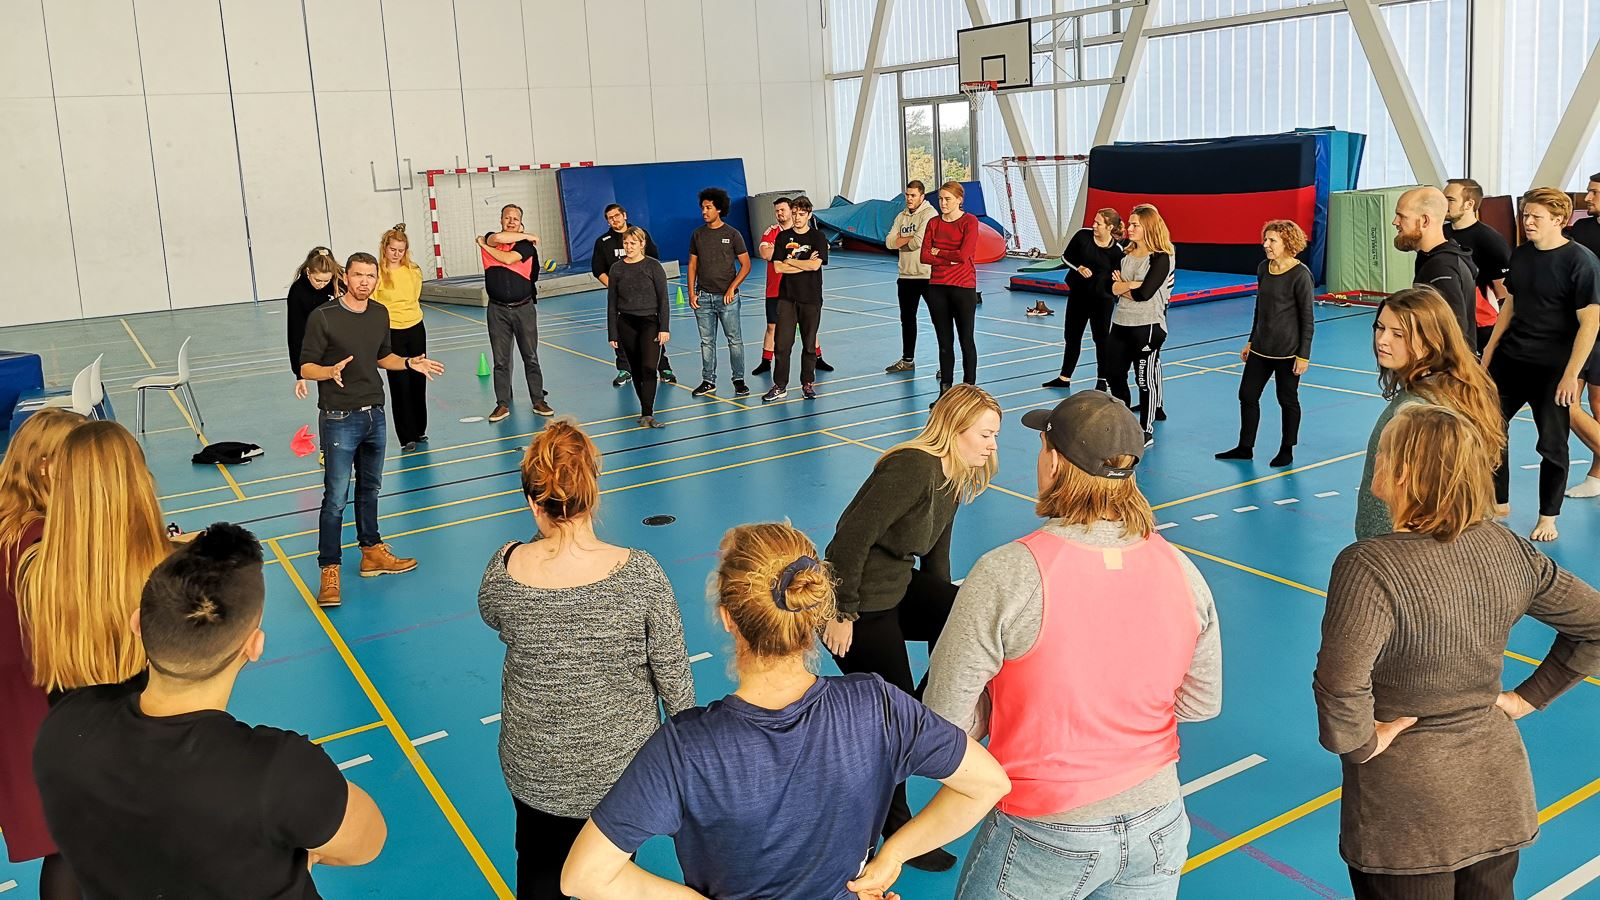 Group of young people learn movement in a gymnasium